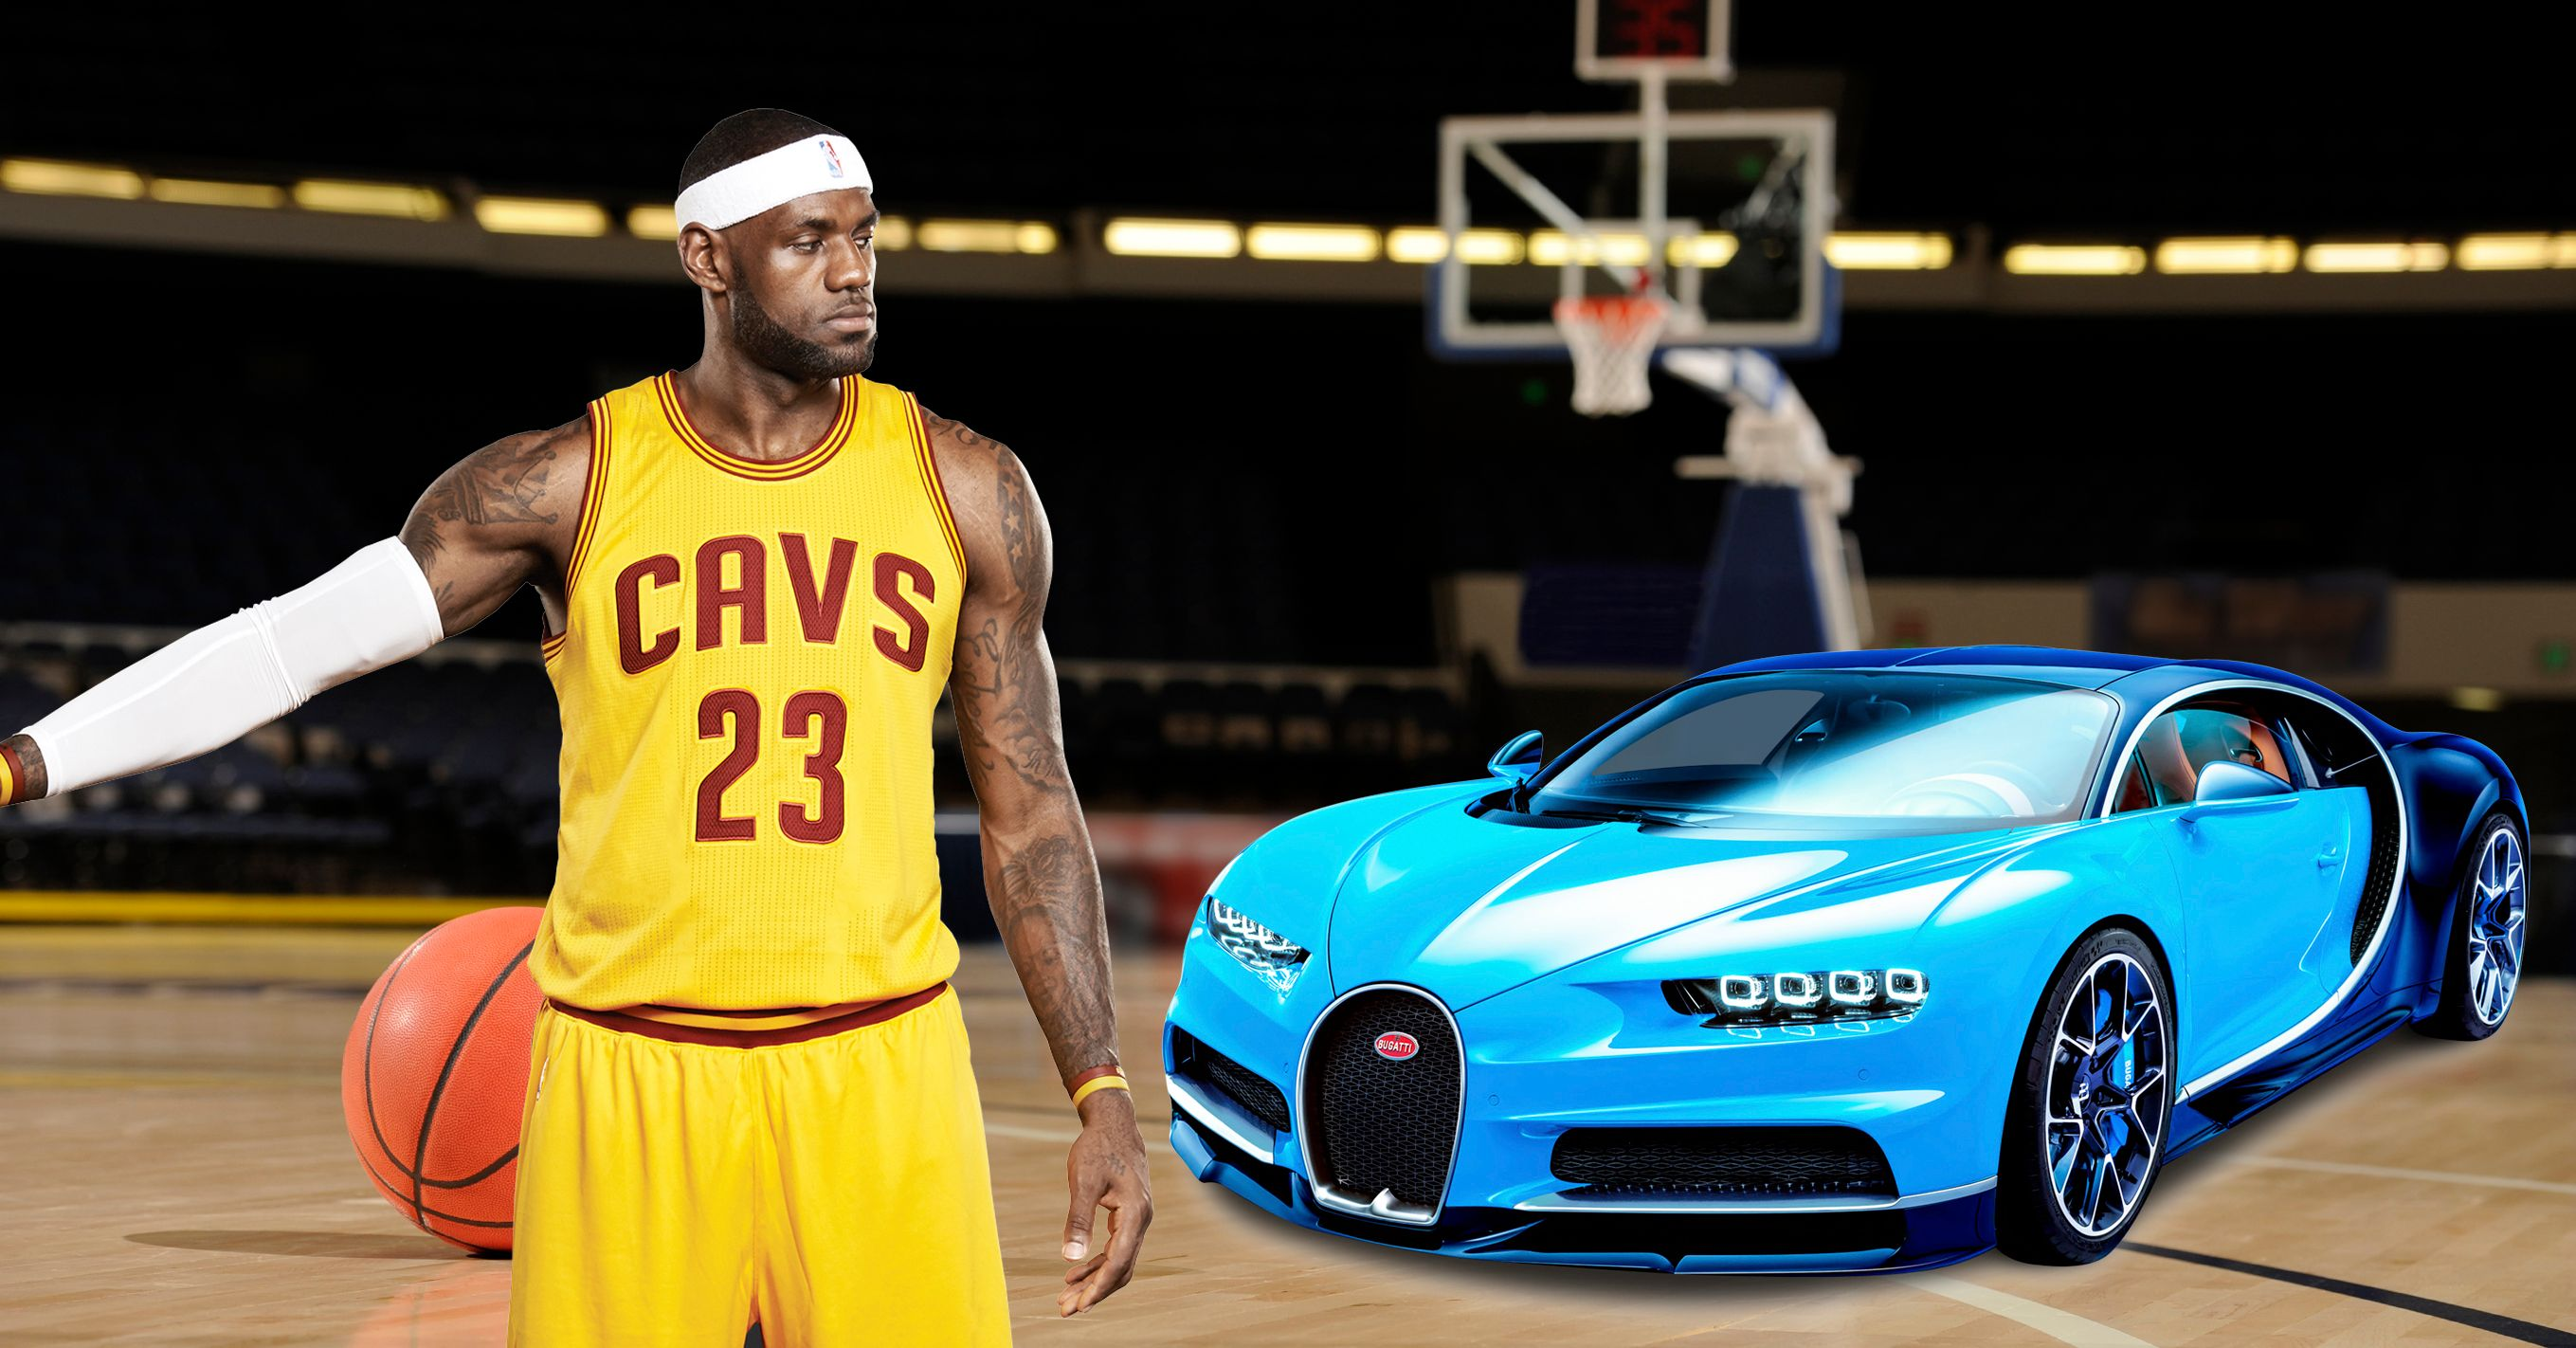 10 Athletes Who Drive Sick Sports Cars And 10 Who Drive Beaters